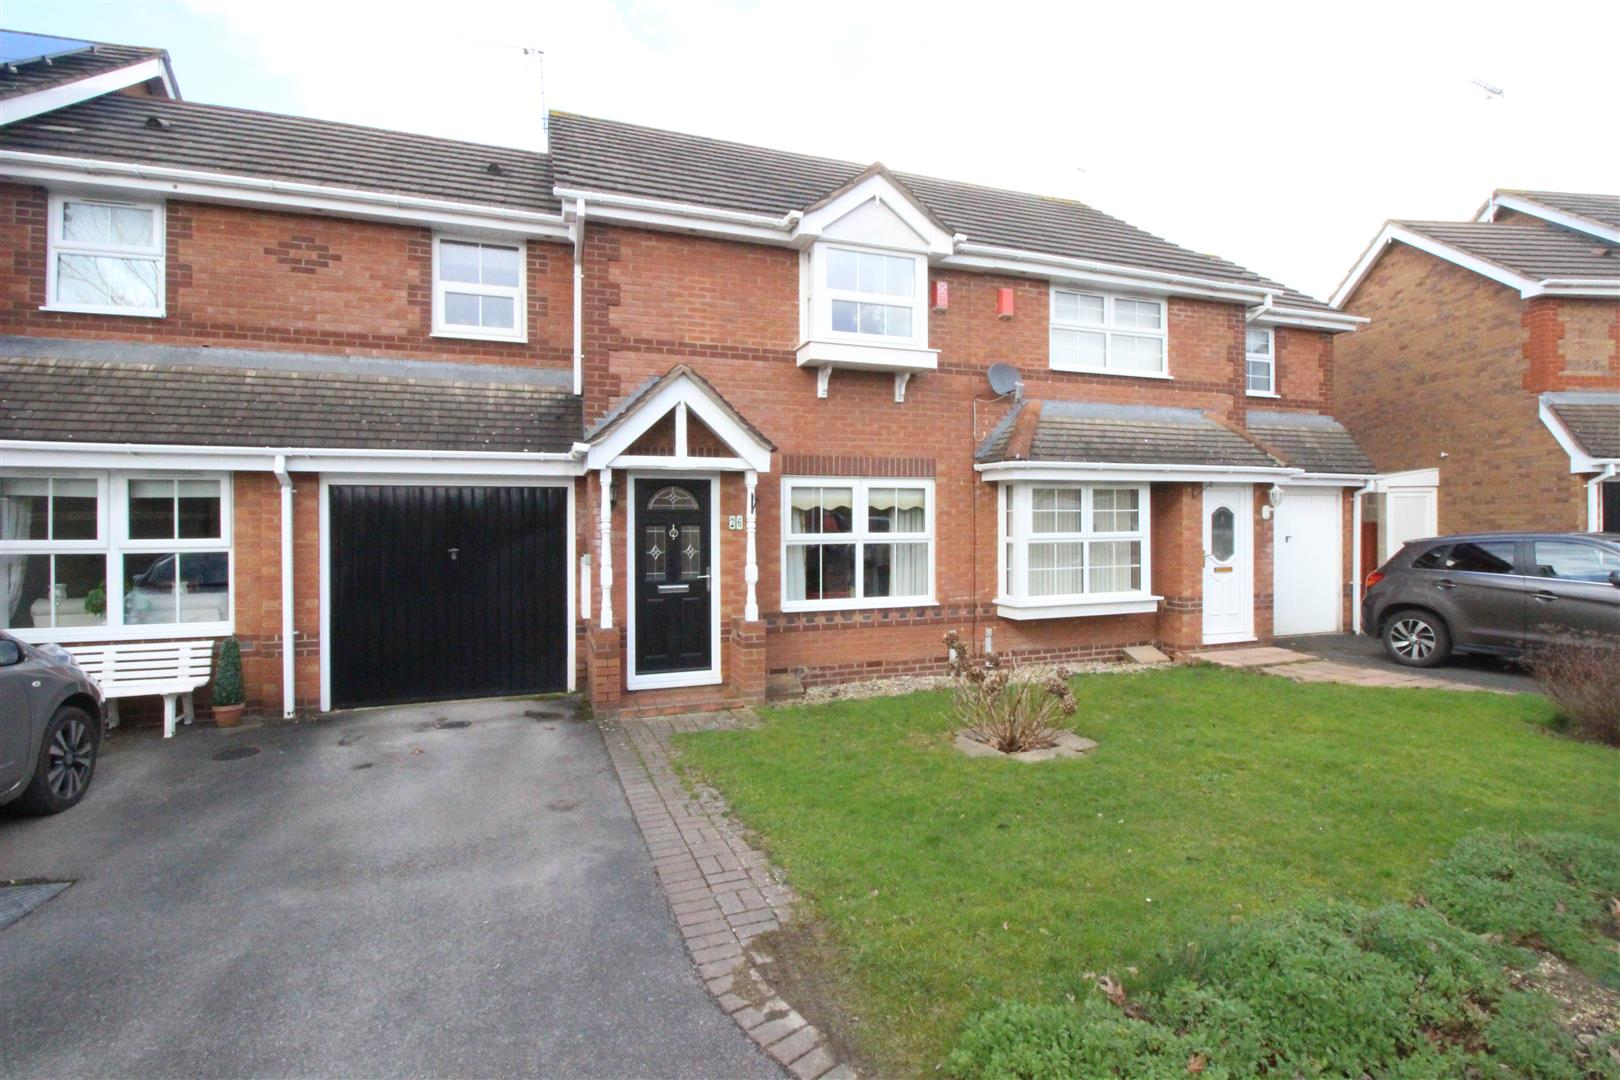 3 Bedrooms Terraced House for sale in Horcott Road, Peatmoor, Swindon